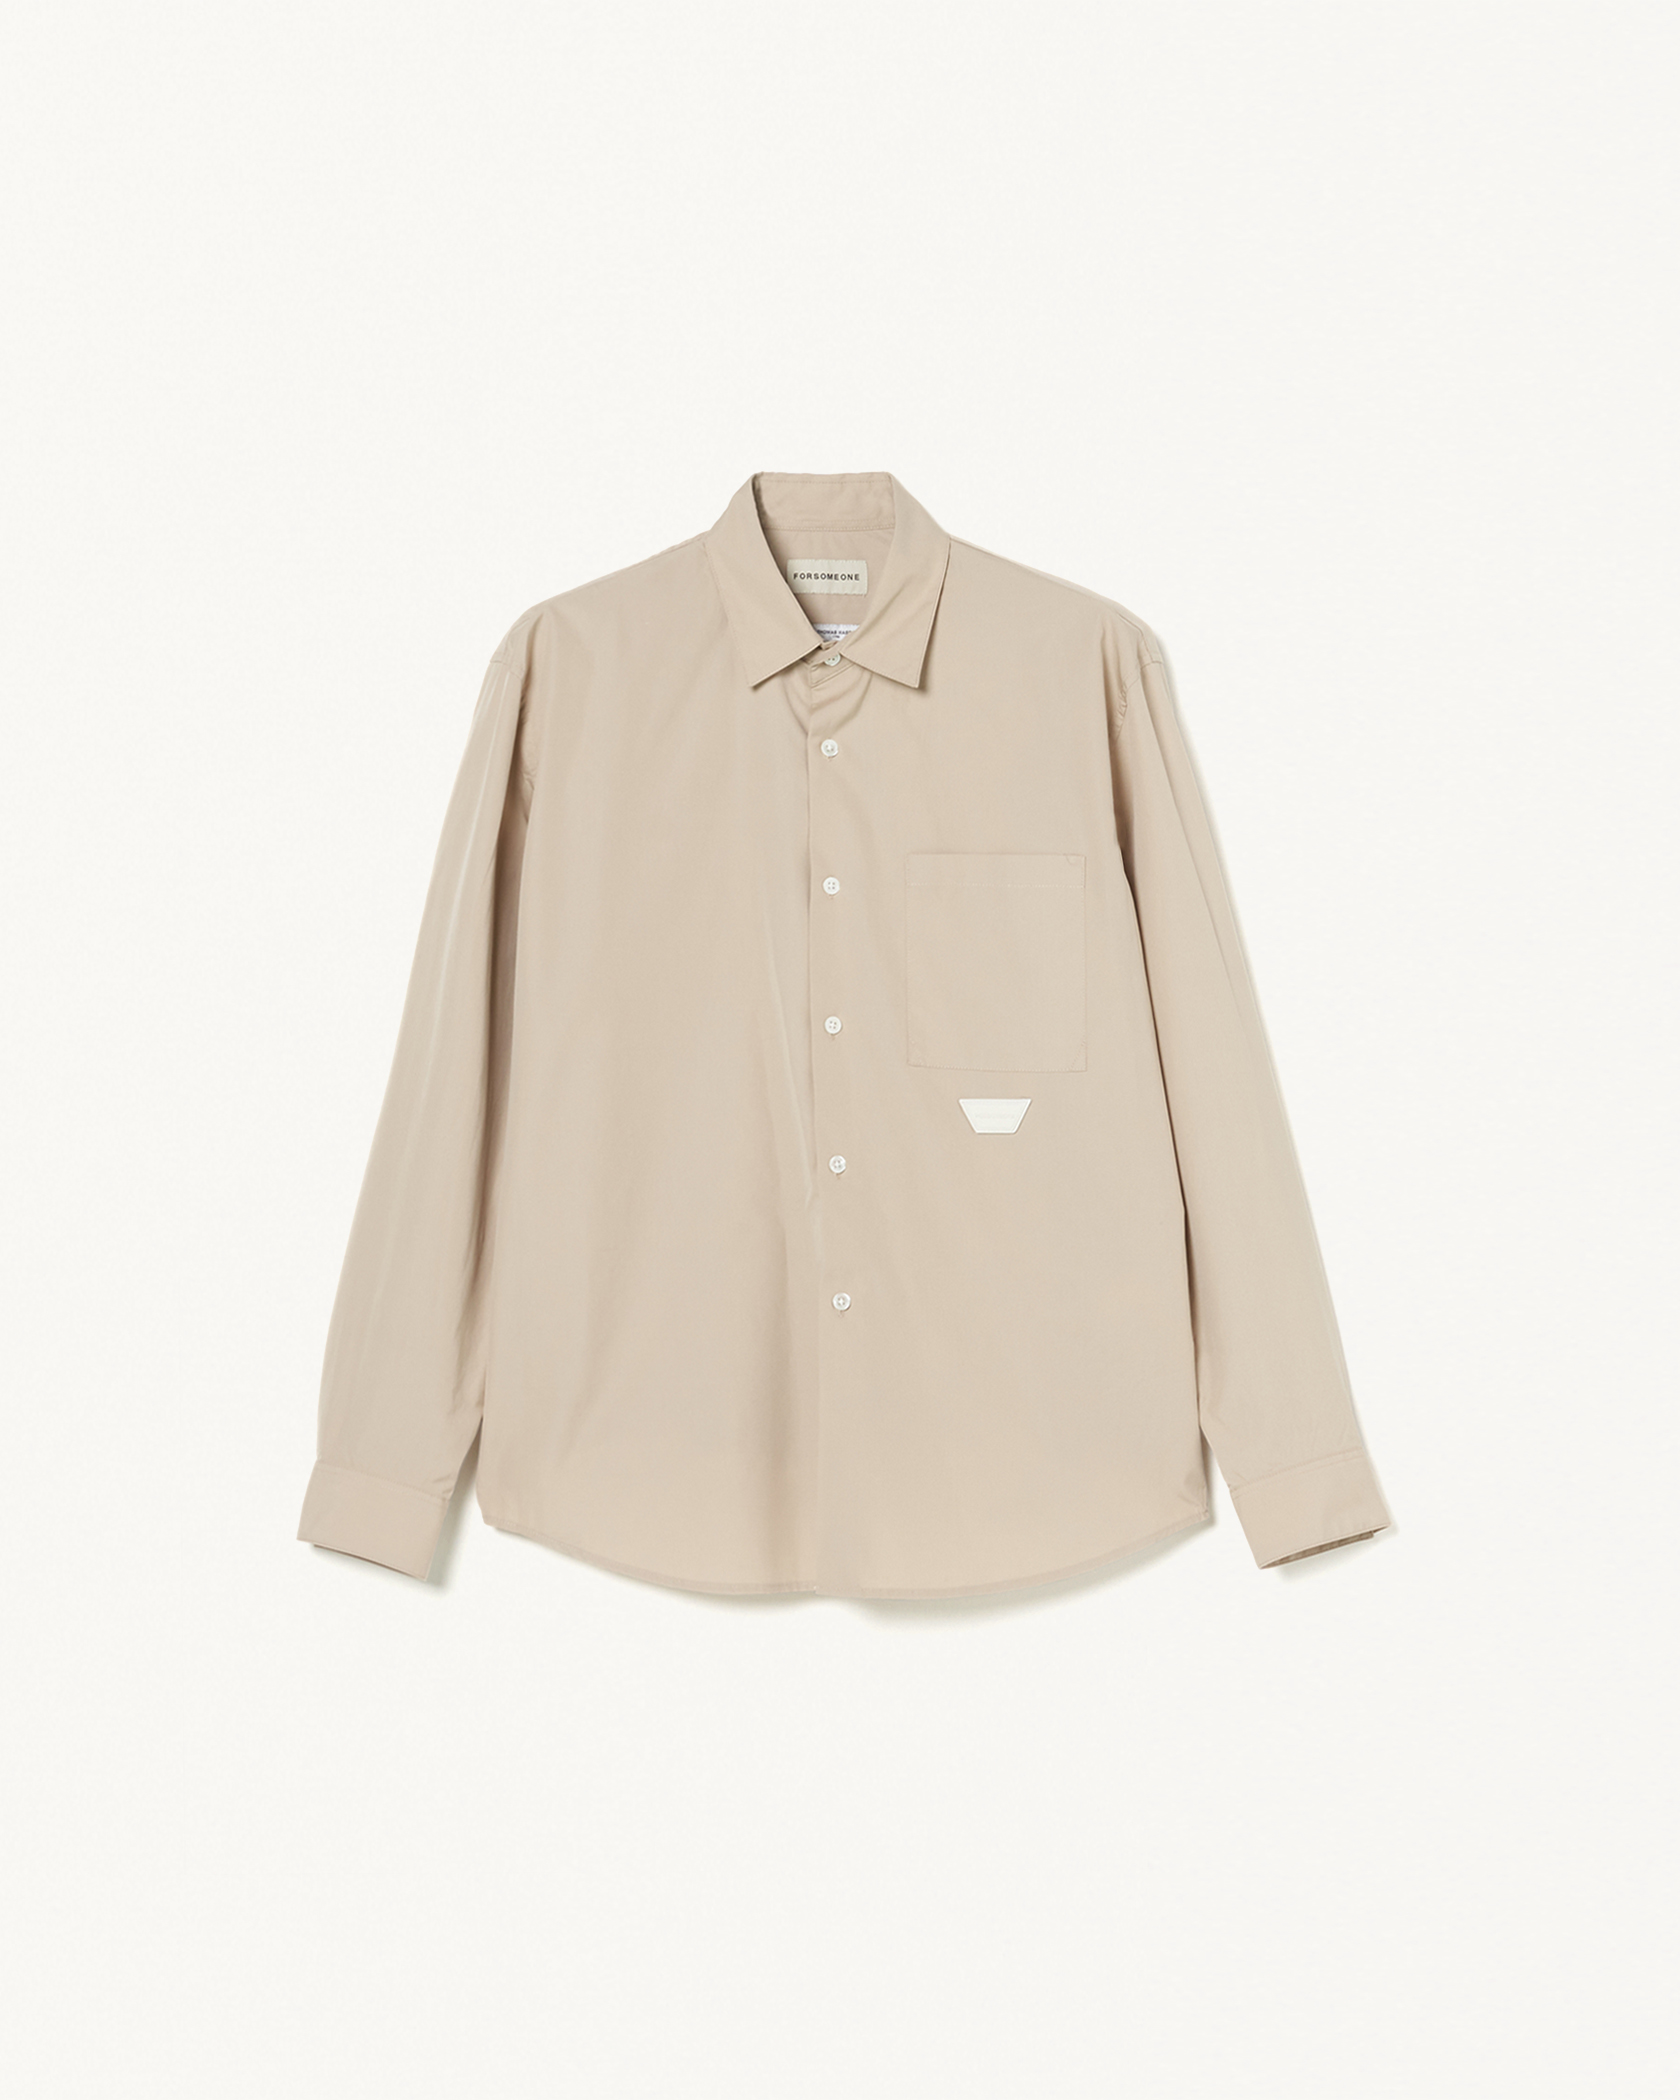 THOMAS BROAD SHIRT 詳細画像 Beige 8